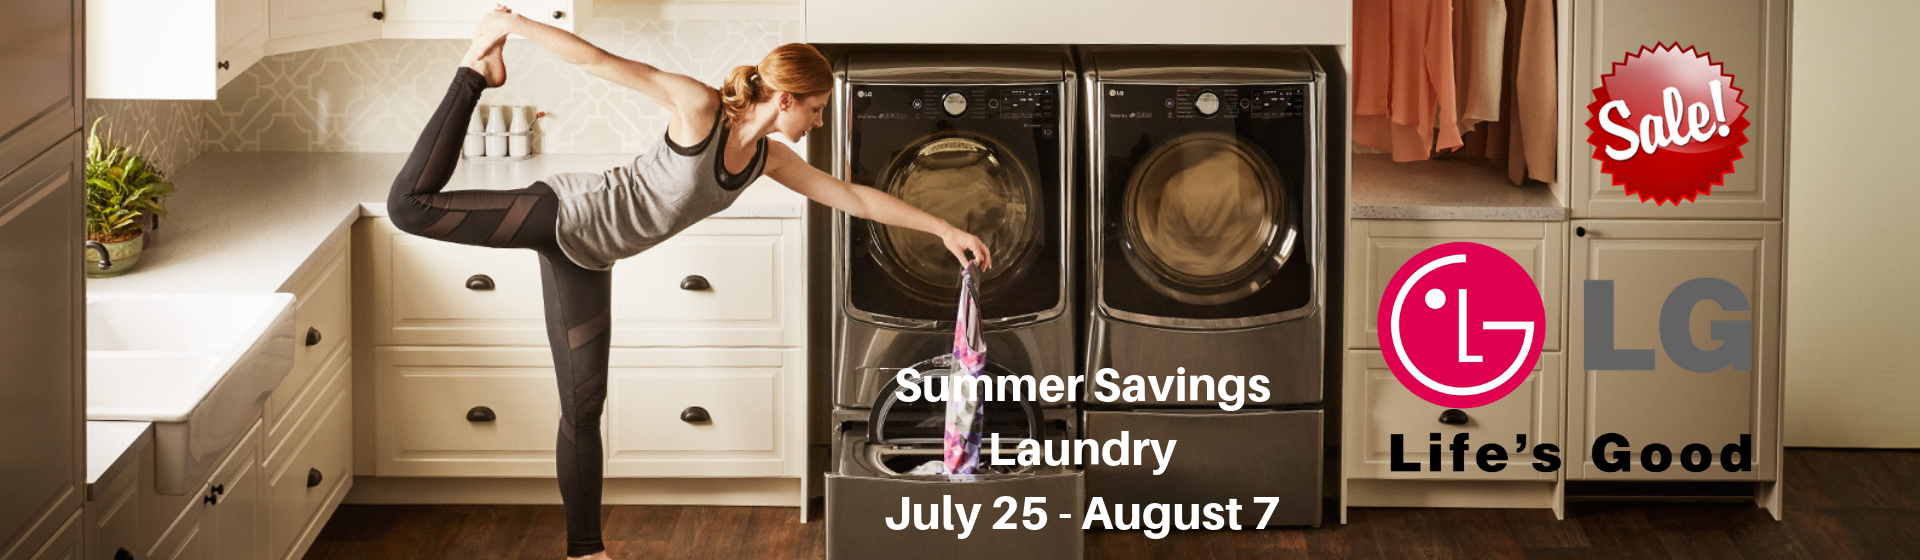 SUMMER SAVINGS LAUNDRY